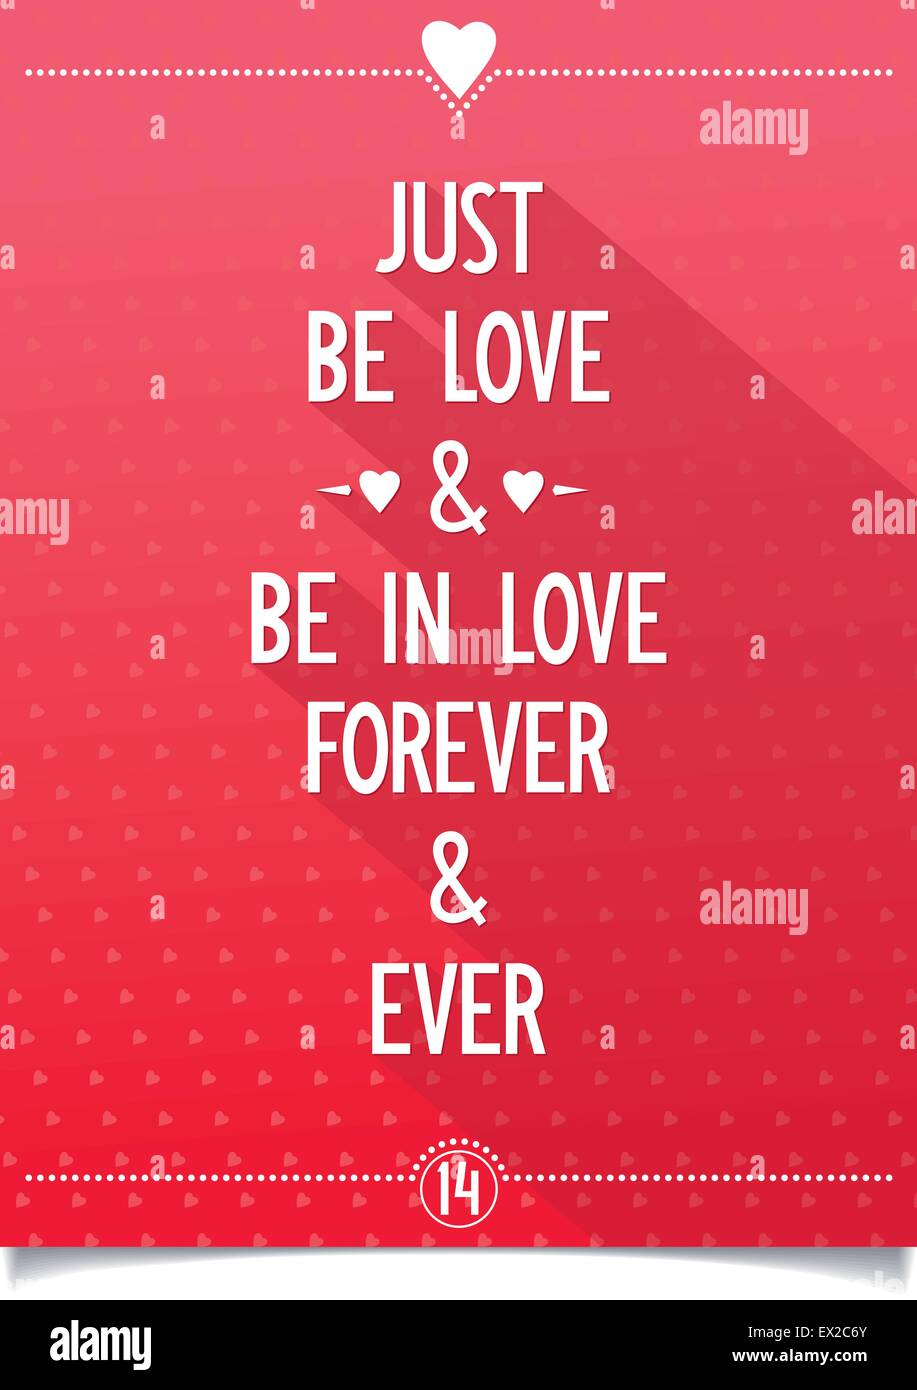 Just be love and be in love, forever and ever. vector eps10 - Stock Vector